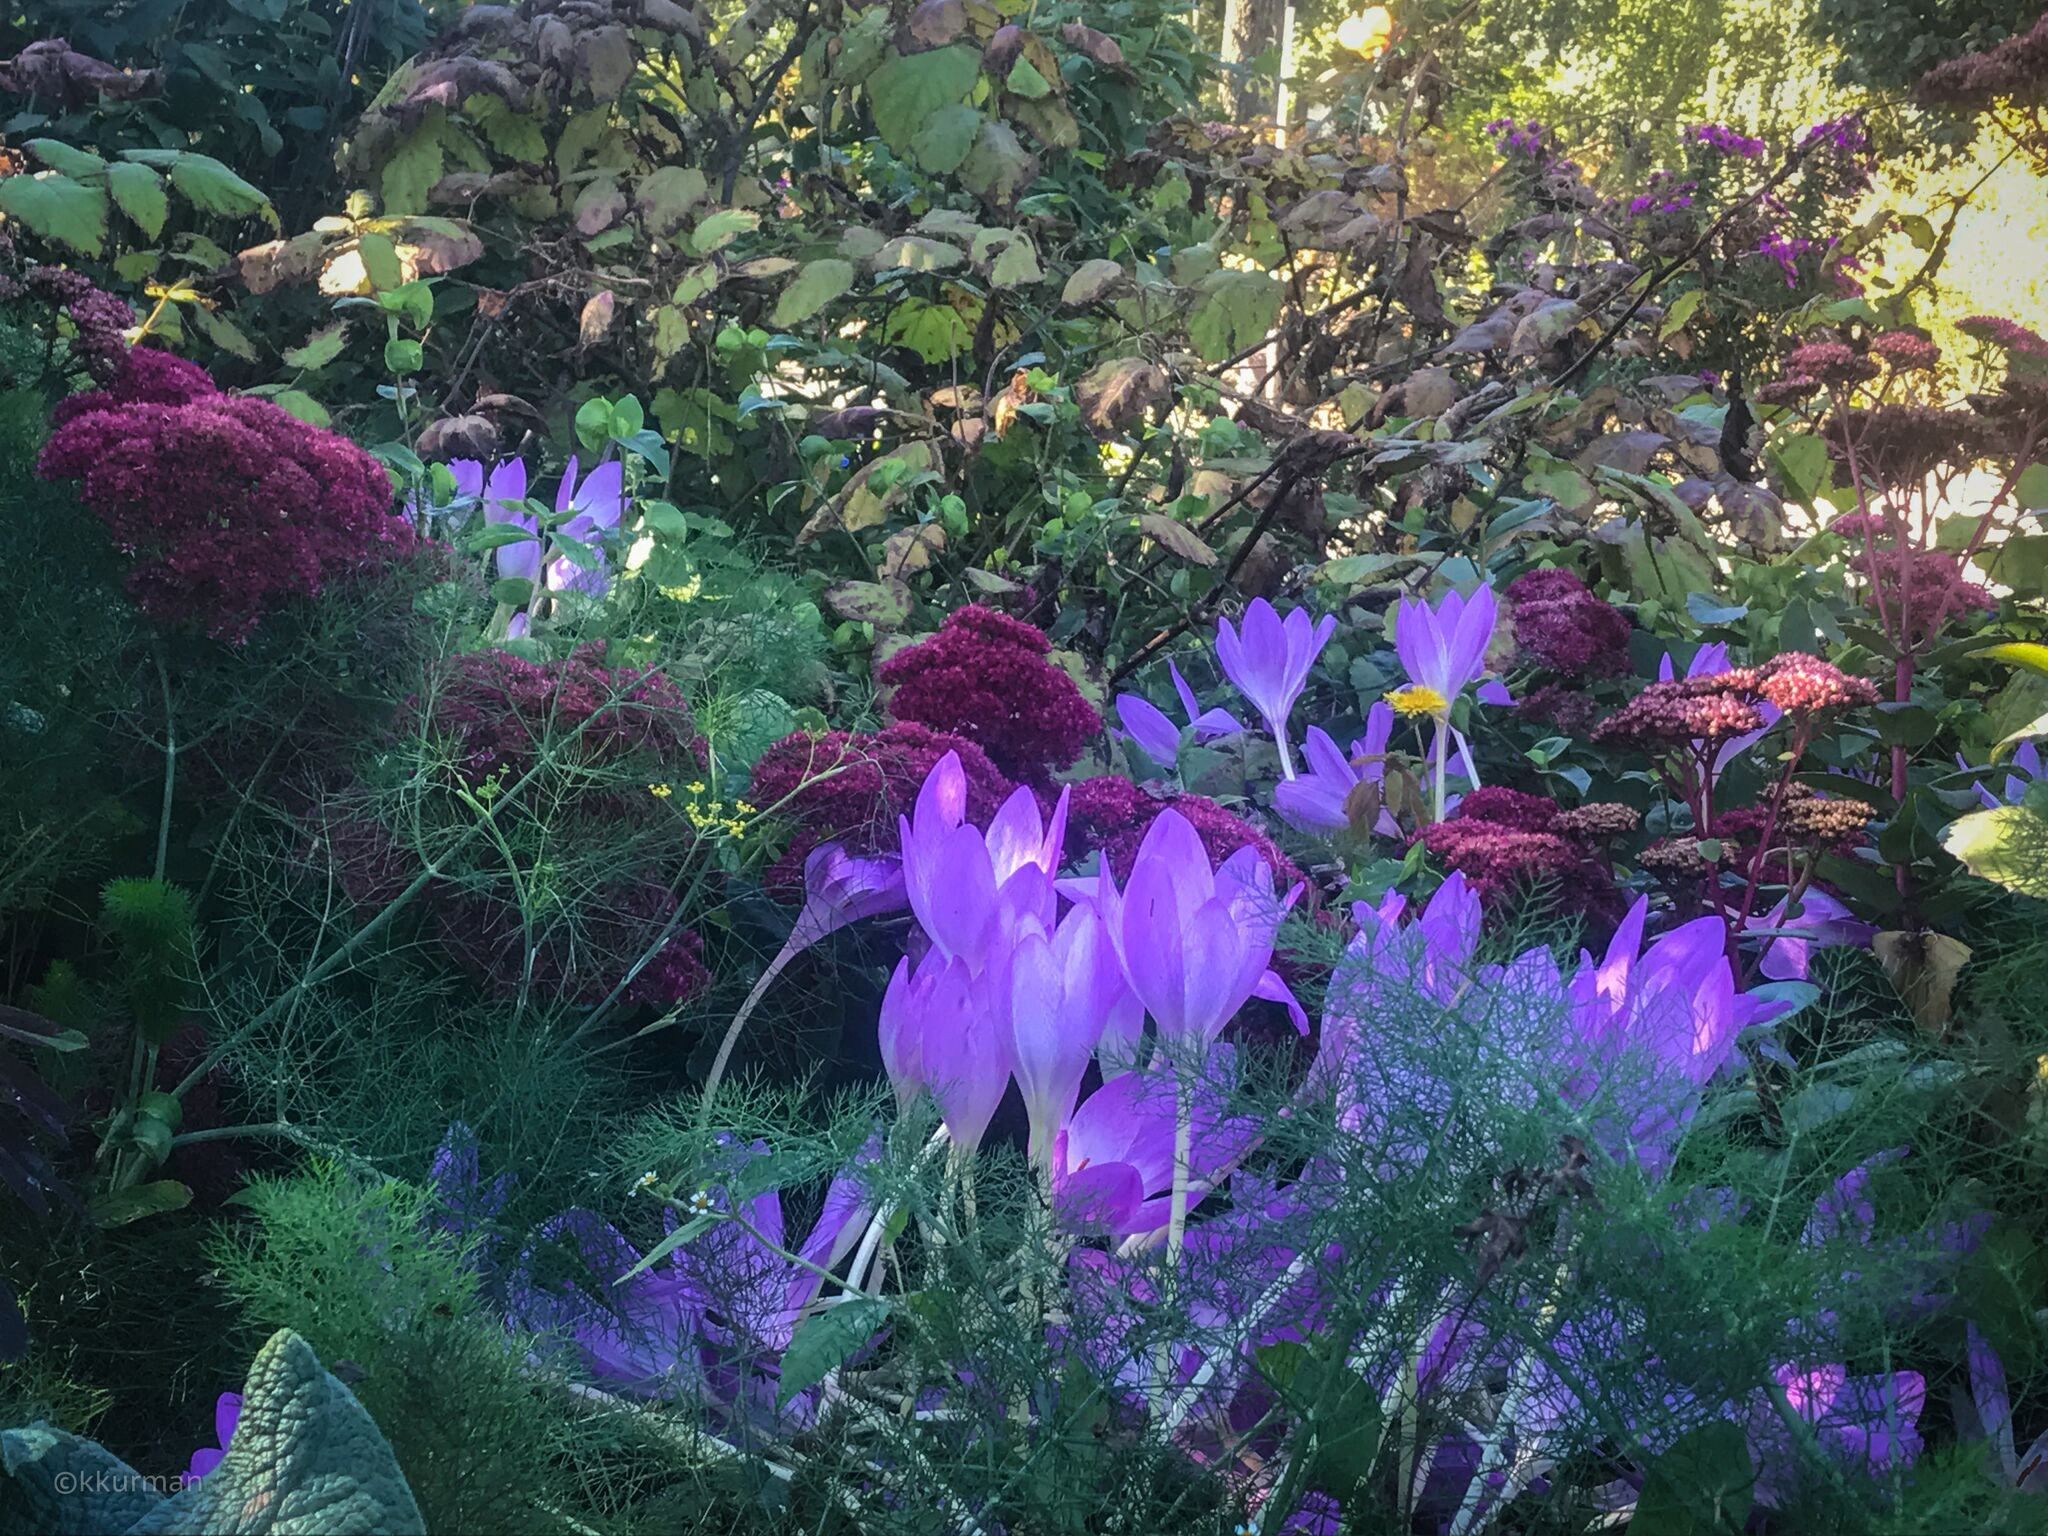 In the Display Gardens; Autumn Crocus, Sedum and ferny fennel